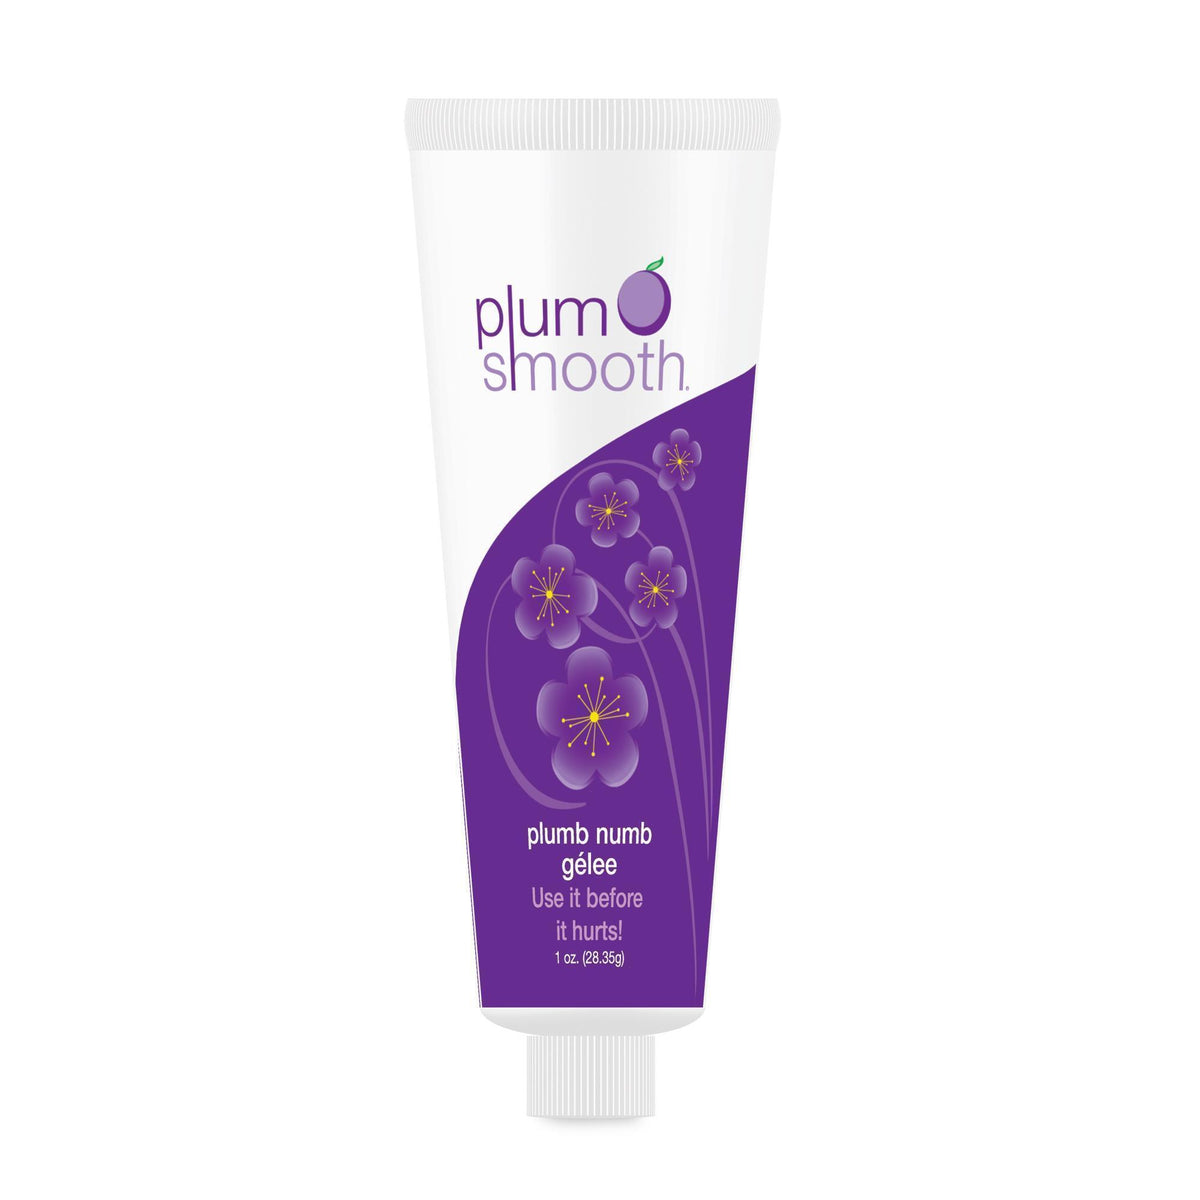 Pre-Wax Products Plum Smooth Plumb Numb / 1oz